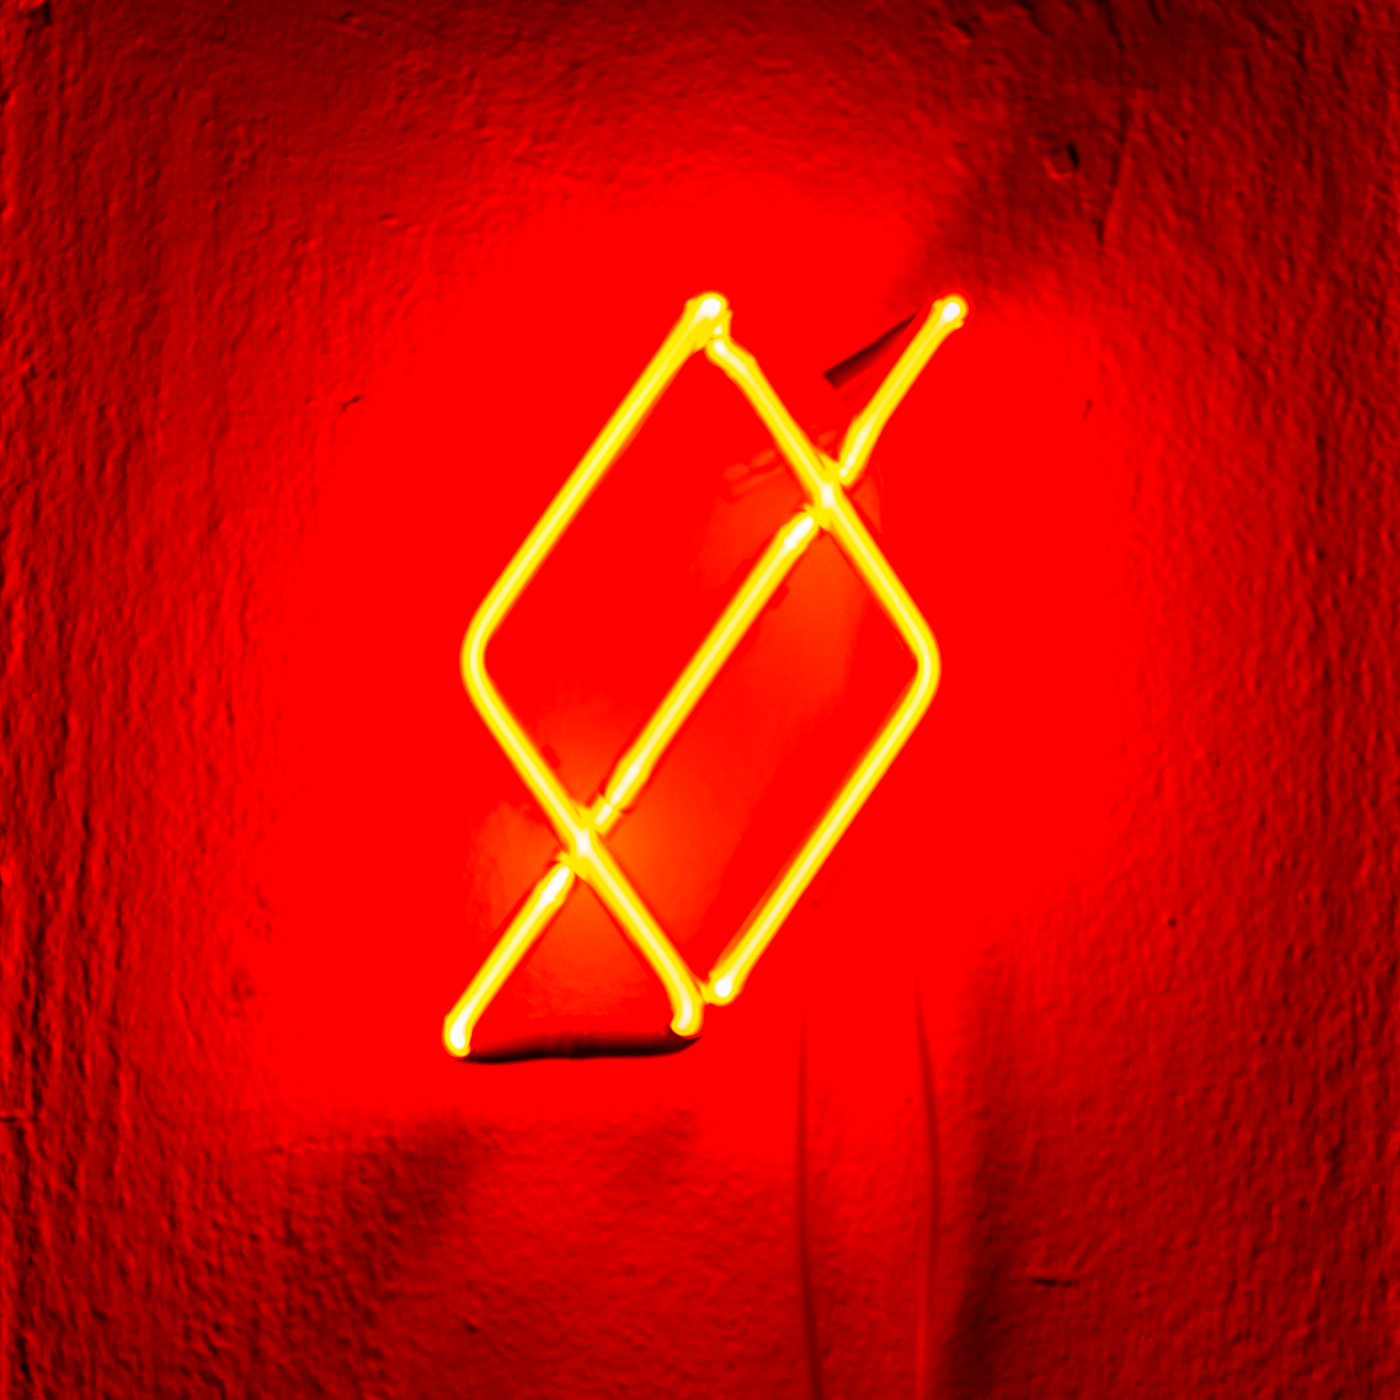 logo_studio_pajuba_neon_by_andre_levy_zhion.png